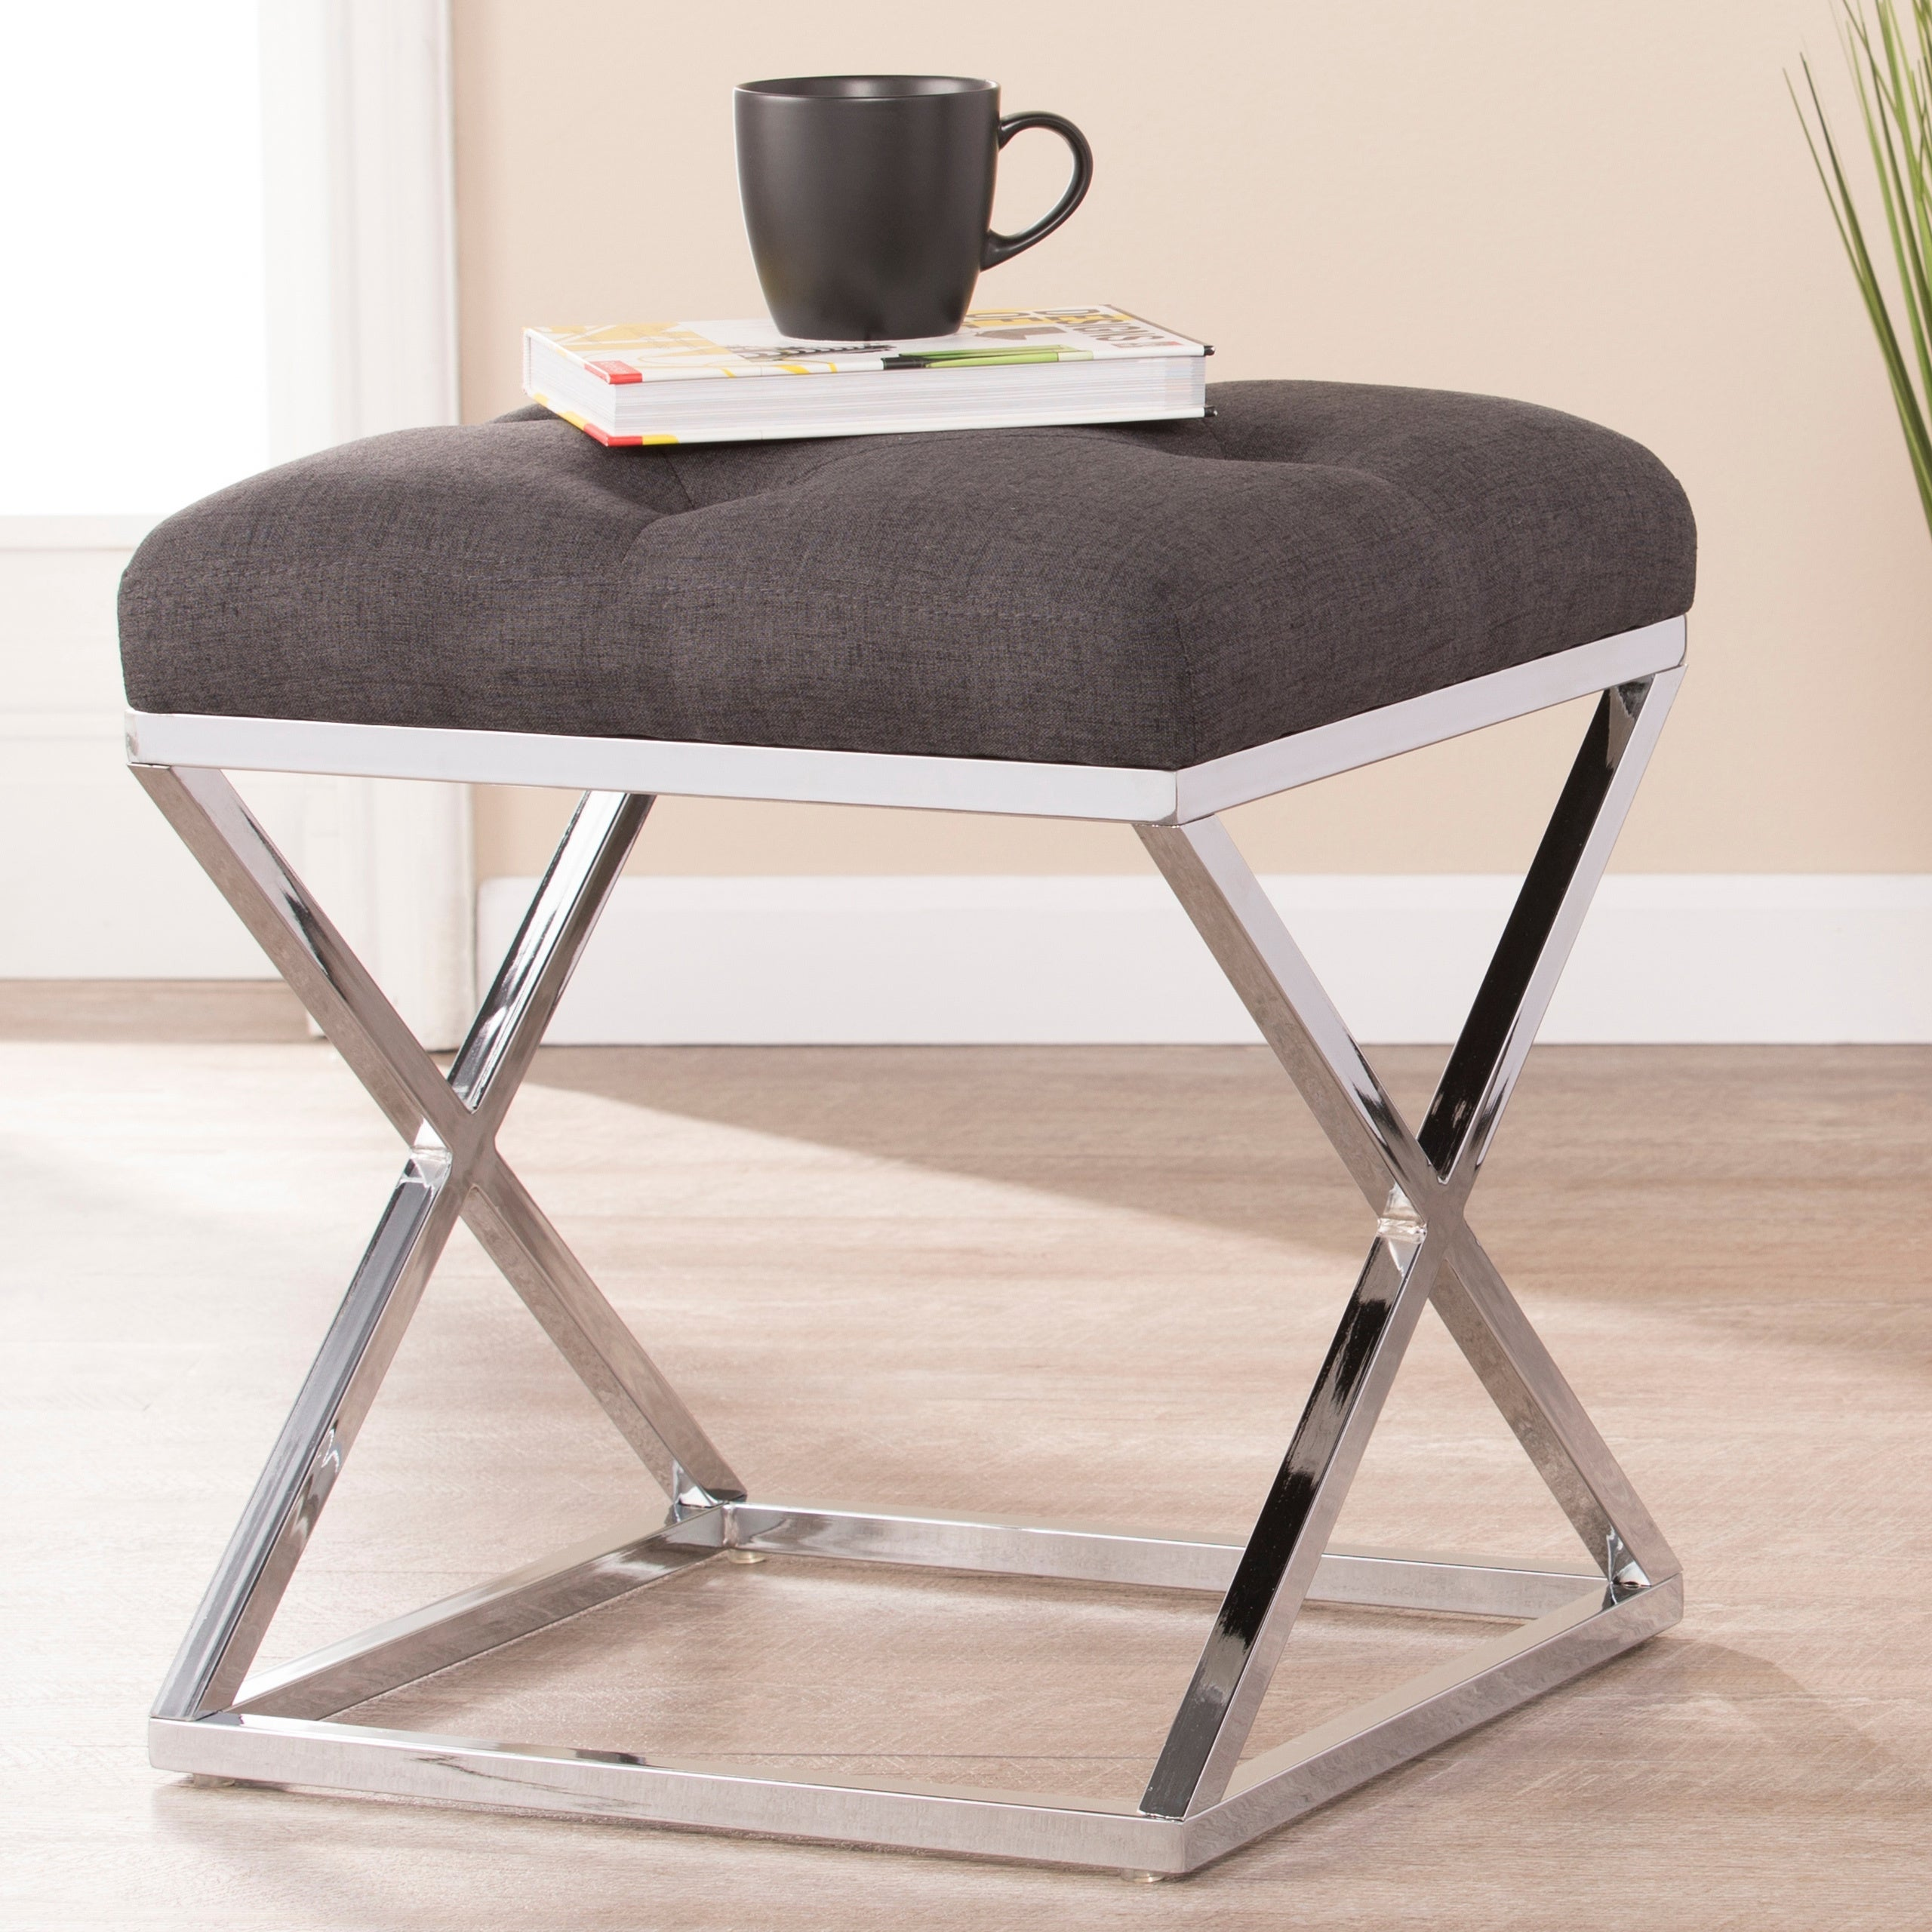 Chair Back Height: Backless · Harper Blvd Kinsley Gray With Chrome  Upholstered Stool